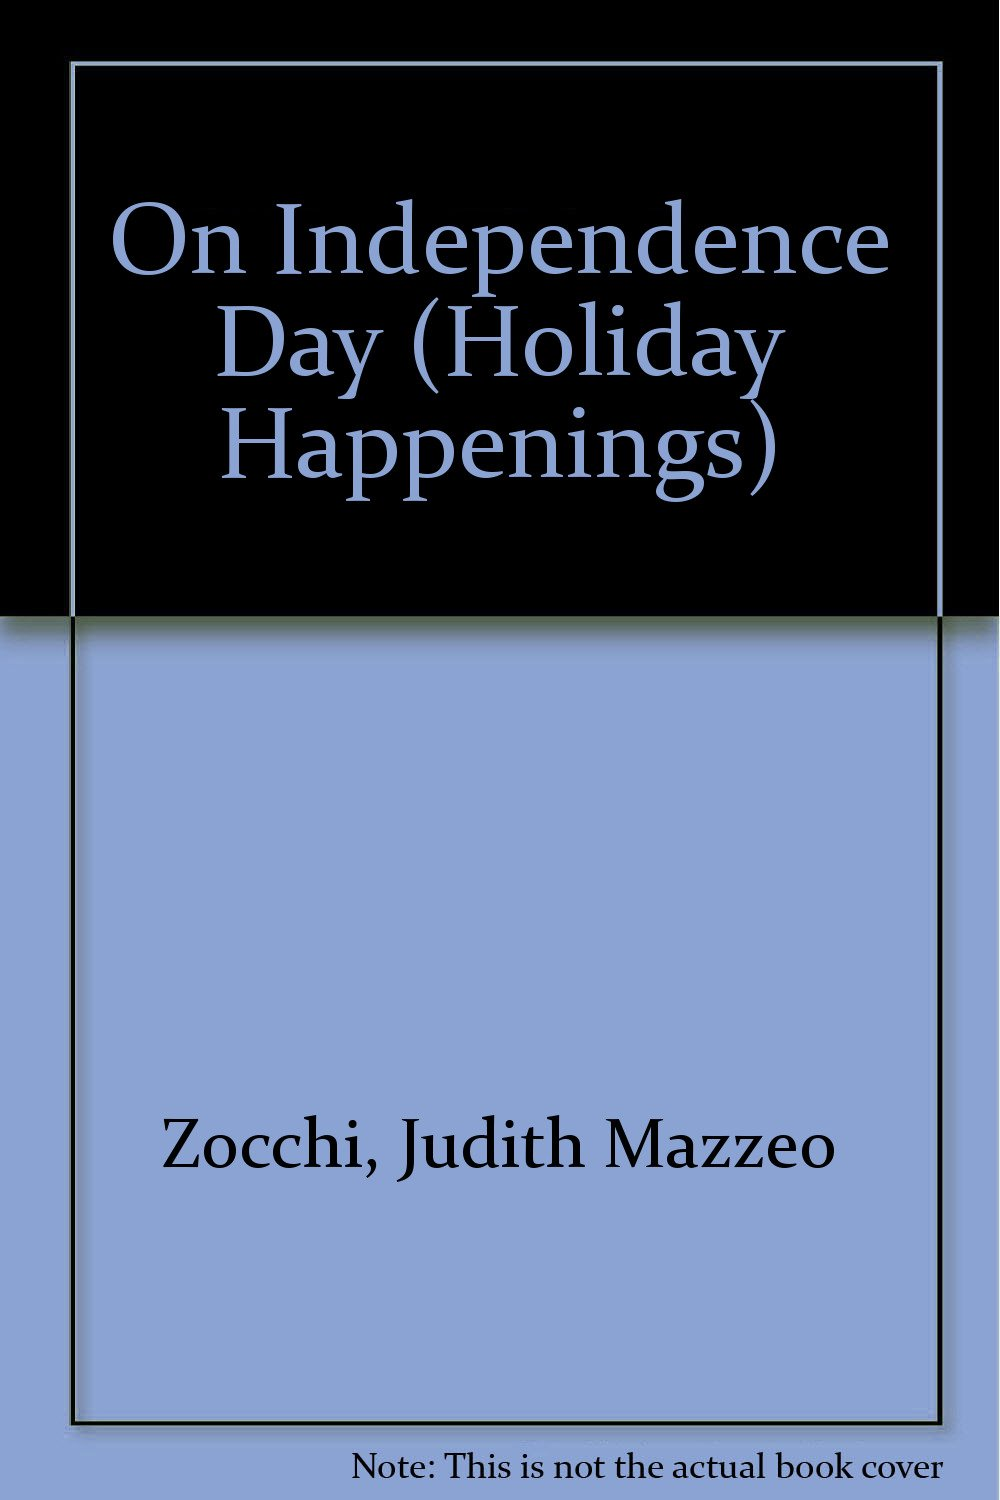 On Independence Day (Holiday Happenings)